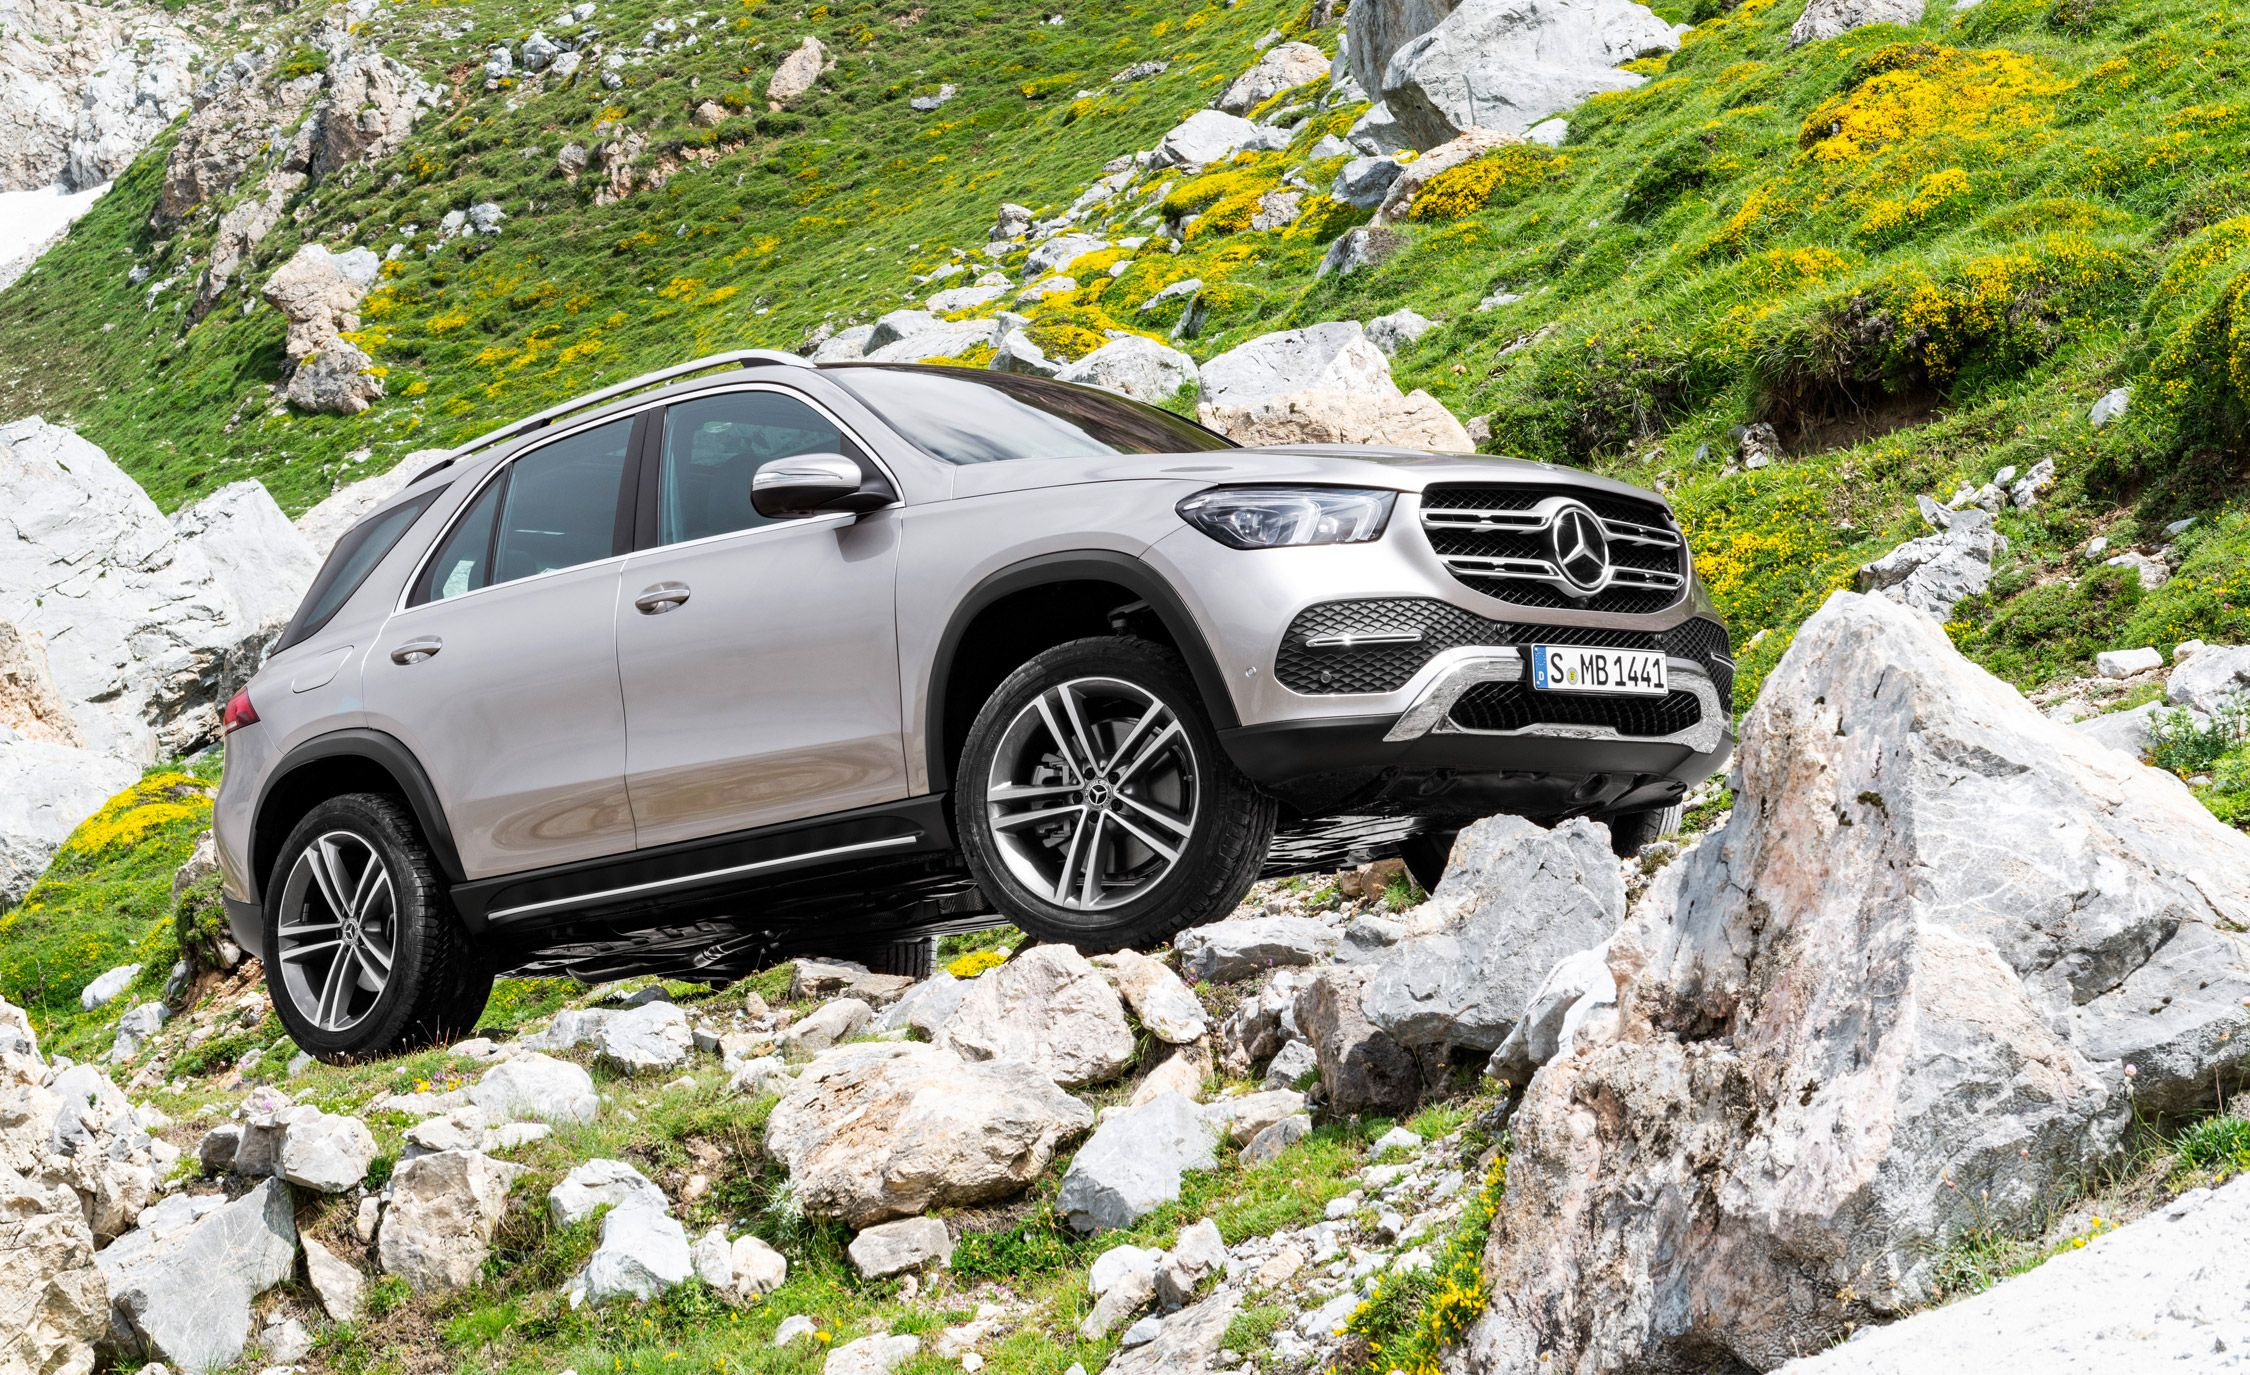 2020 Mercedes-Benz GLE-class Photos and Info